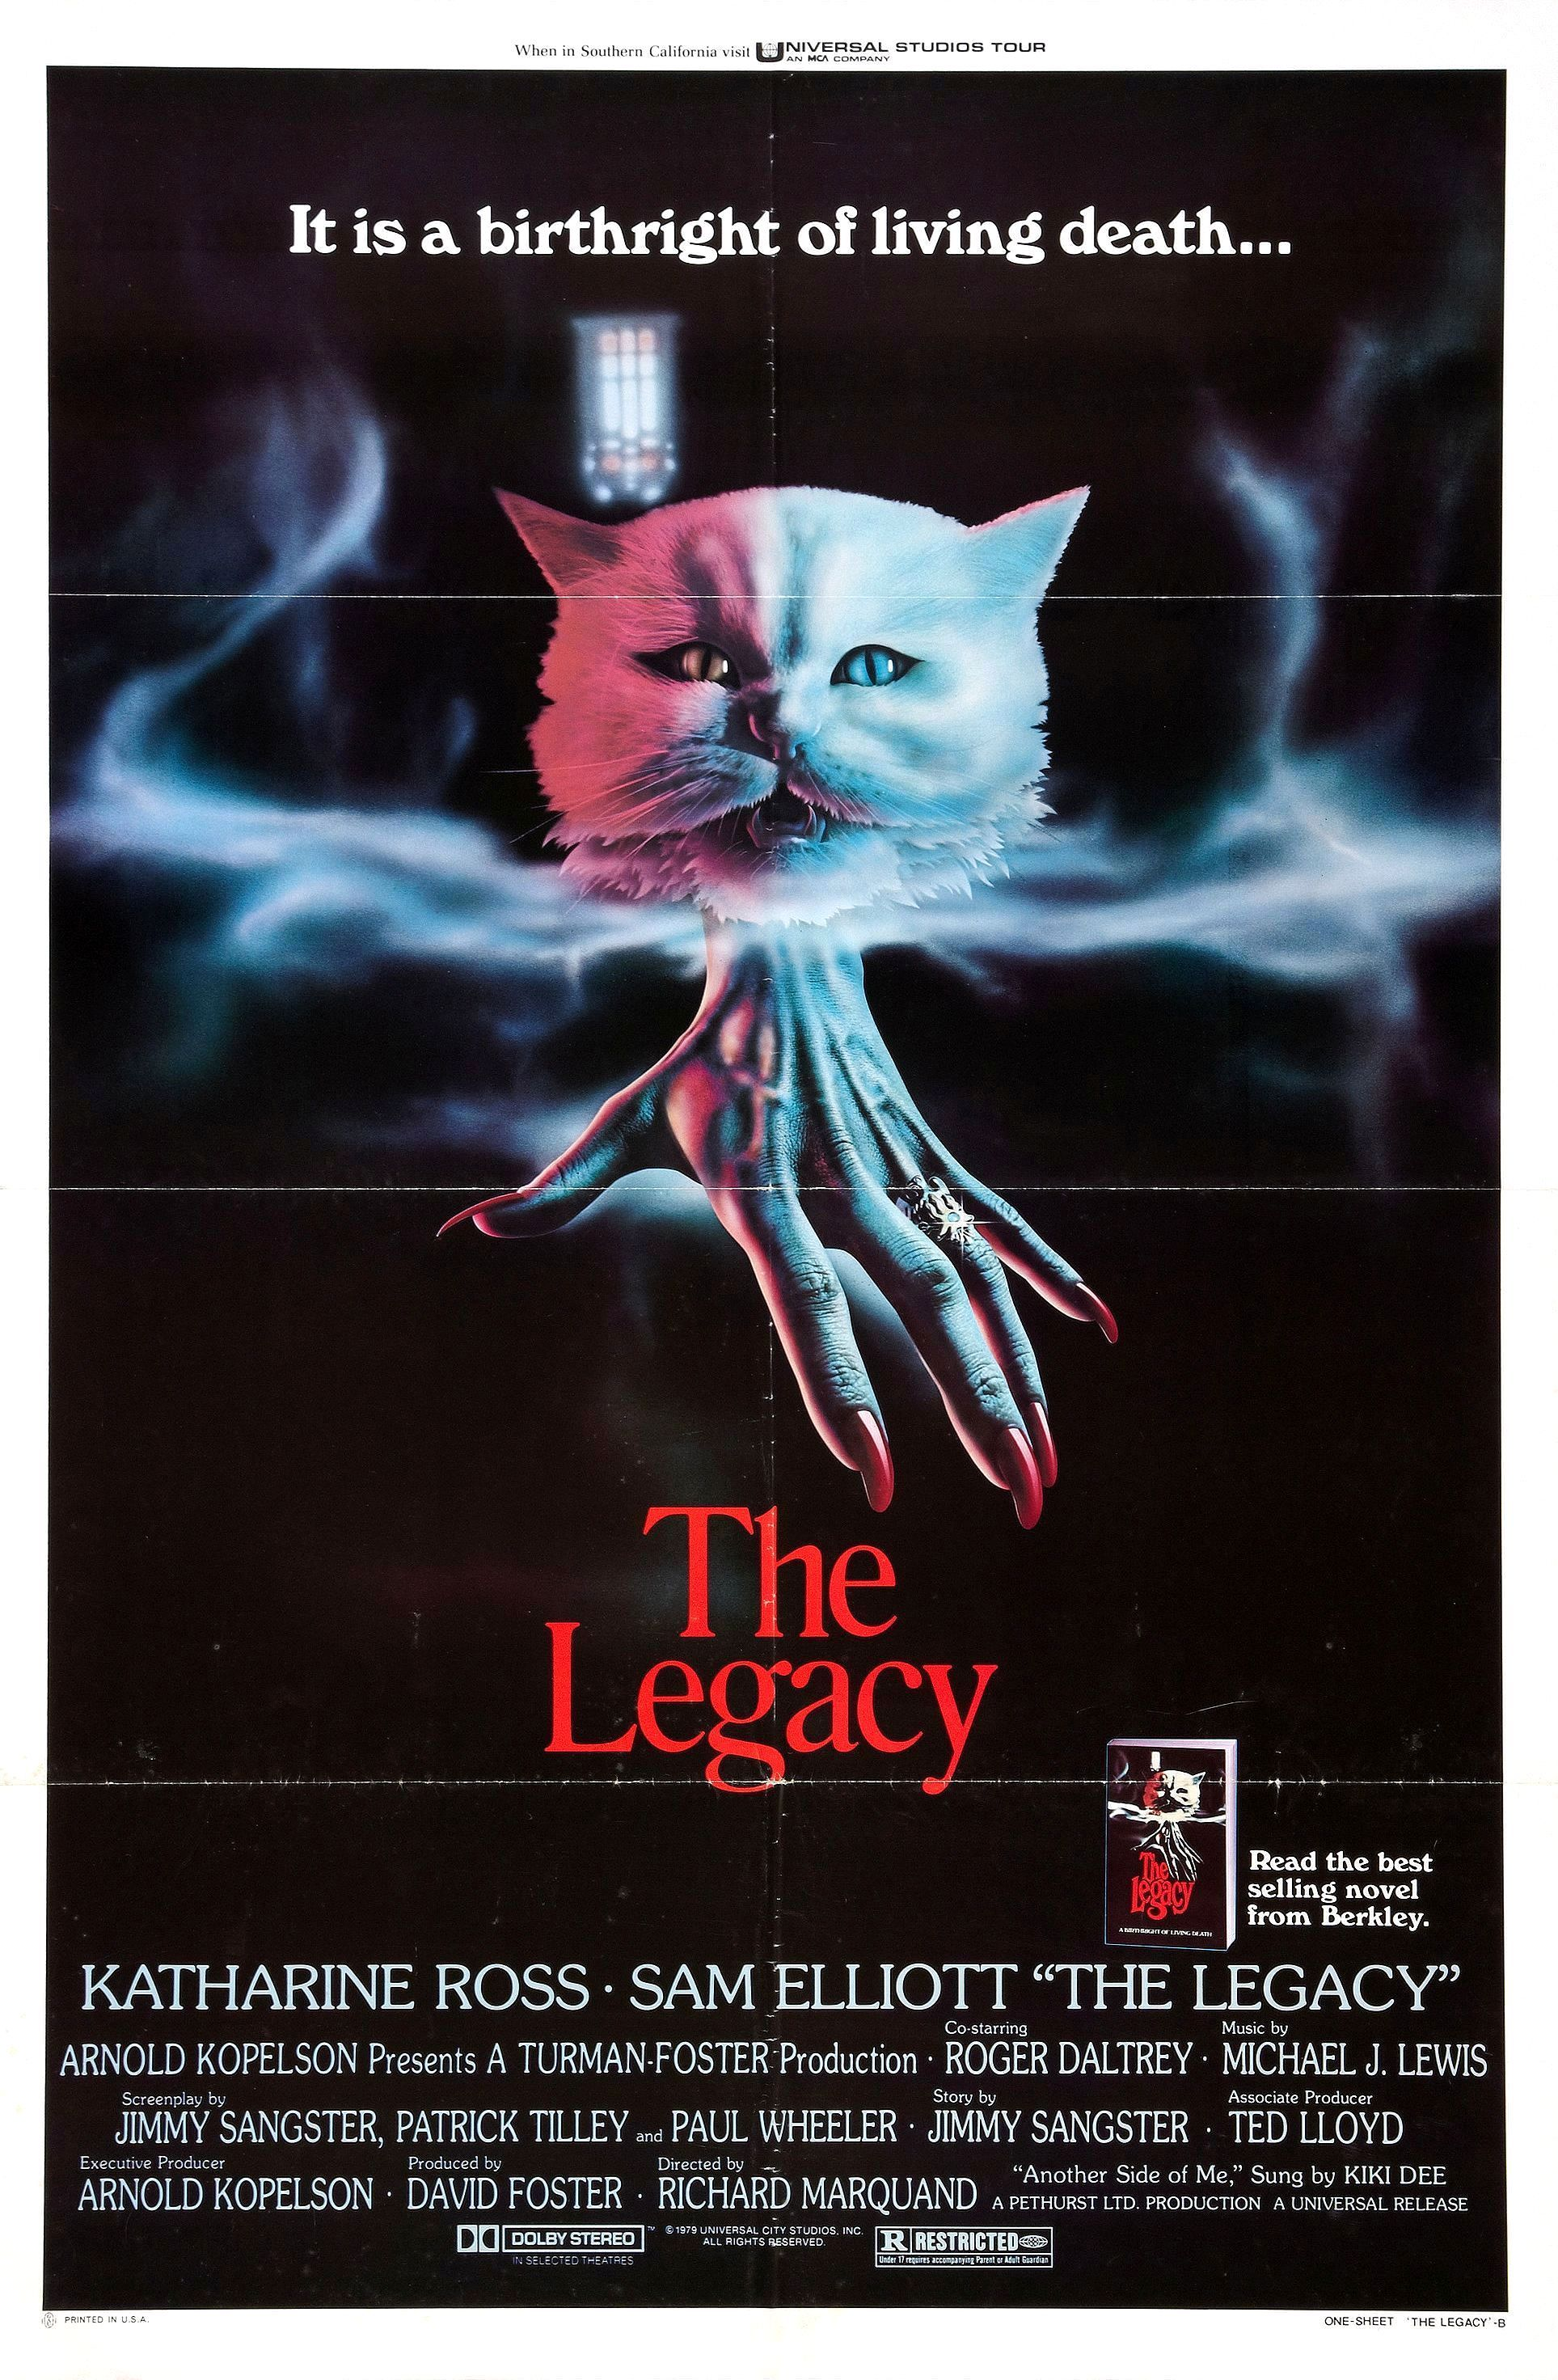 The Legacy (1978) Horror movie posters, Horror posters